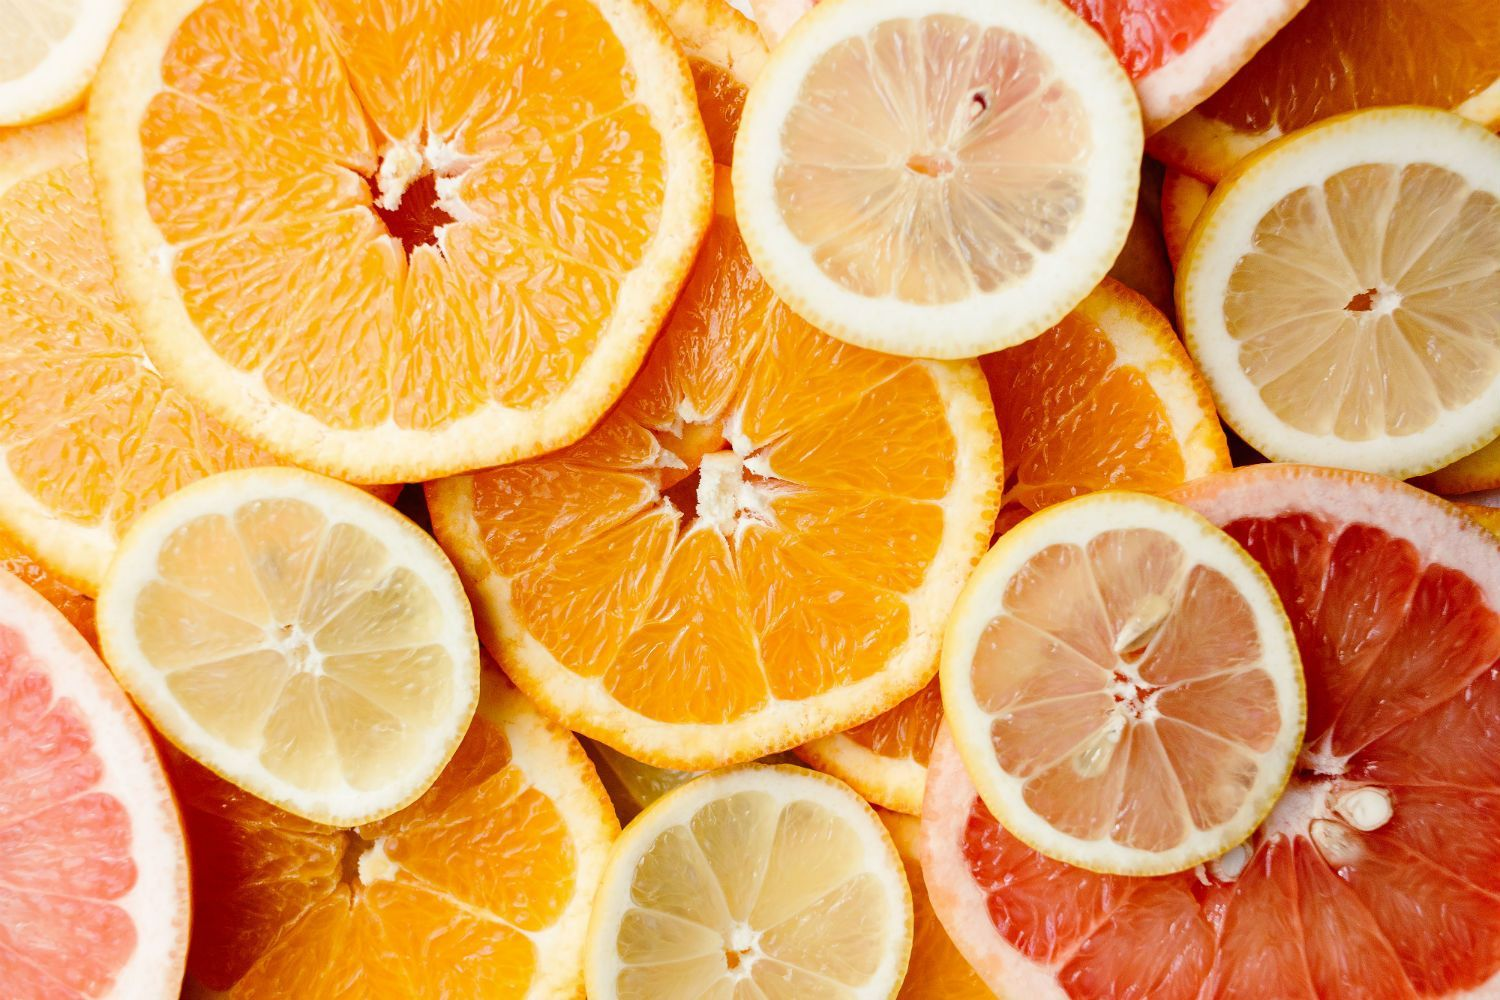 citrus-close-up-cut-1002778.jpg